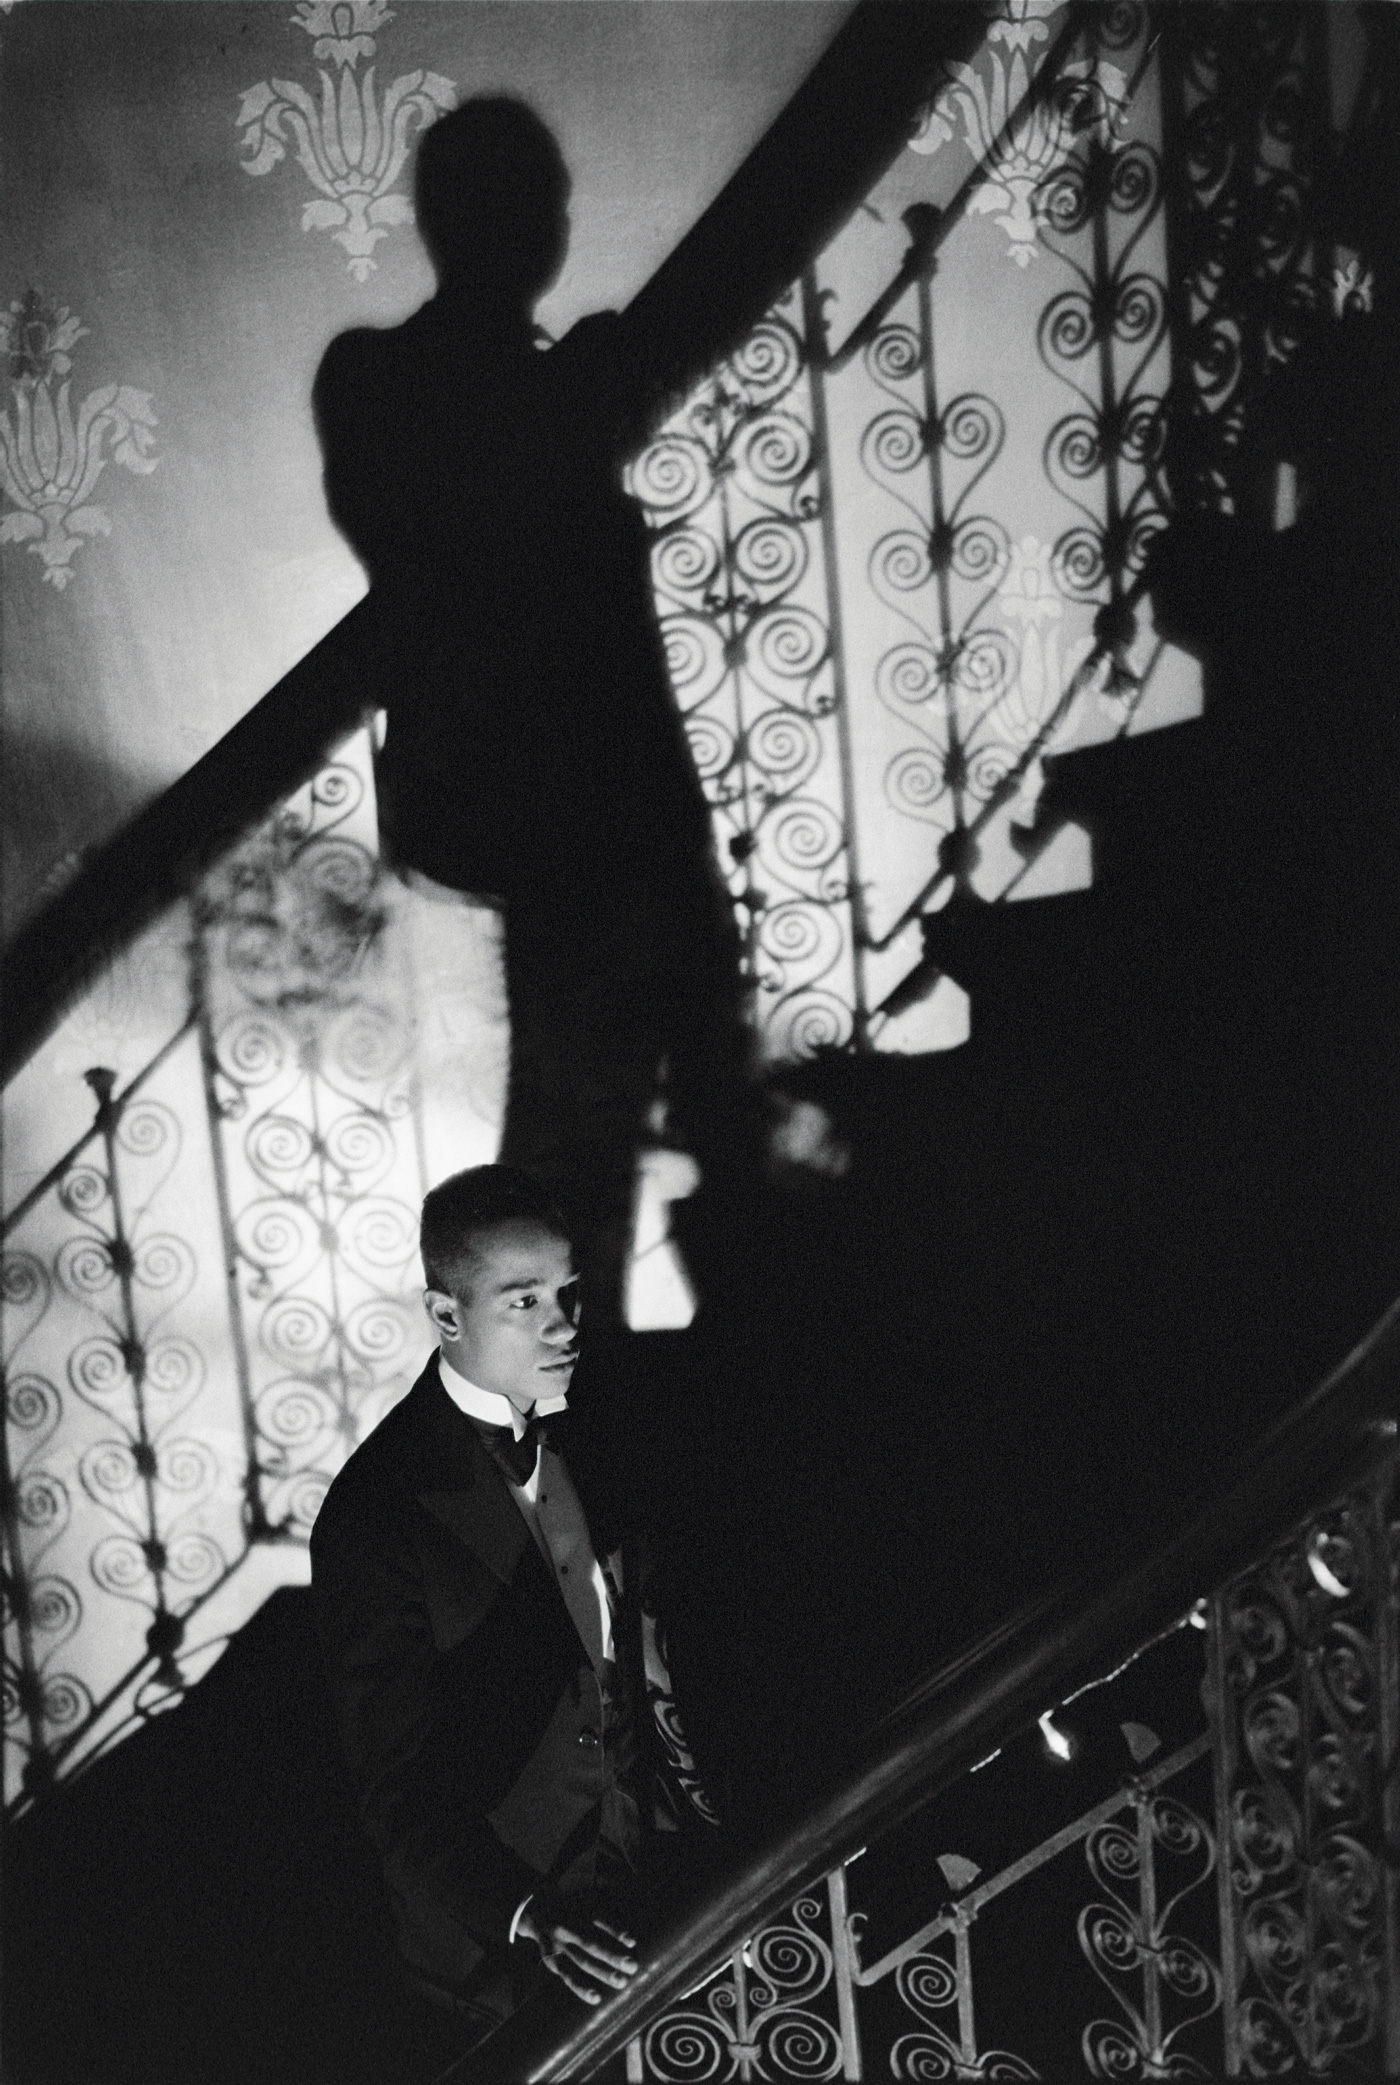 <i>Film Noir Staircase (Looking for Langston Vintage Series)</i><br> Kodak Premier print, Diasec mounted on aluminum<br> 102 x 70 9/10 inches<br> 1989/2016